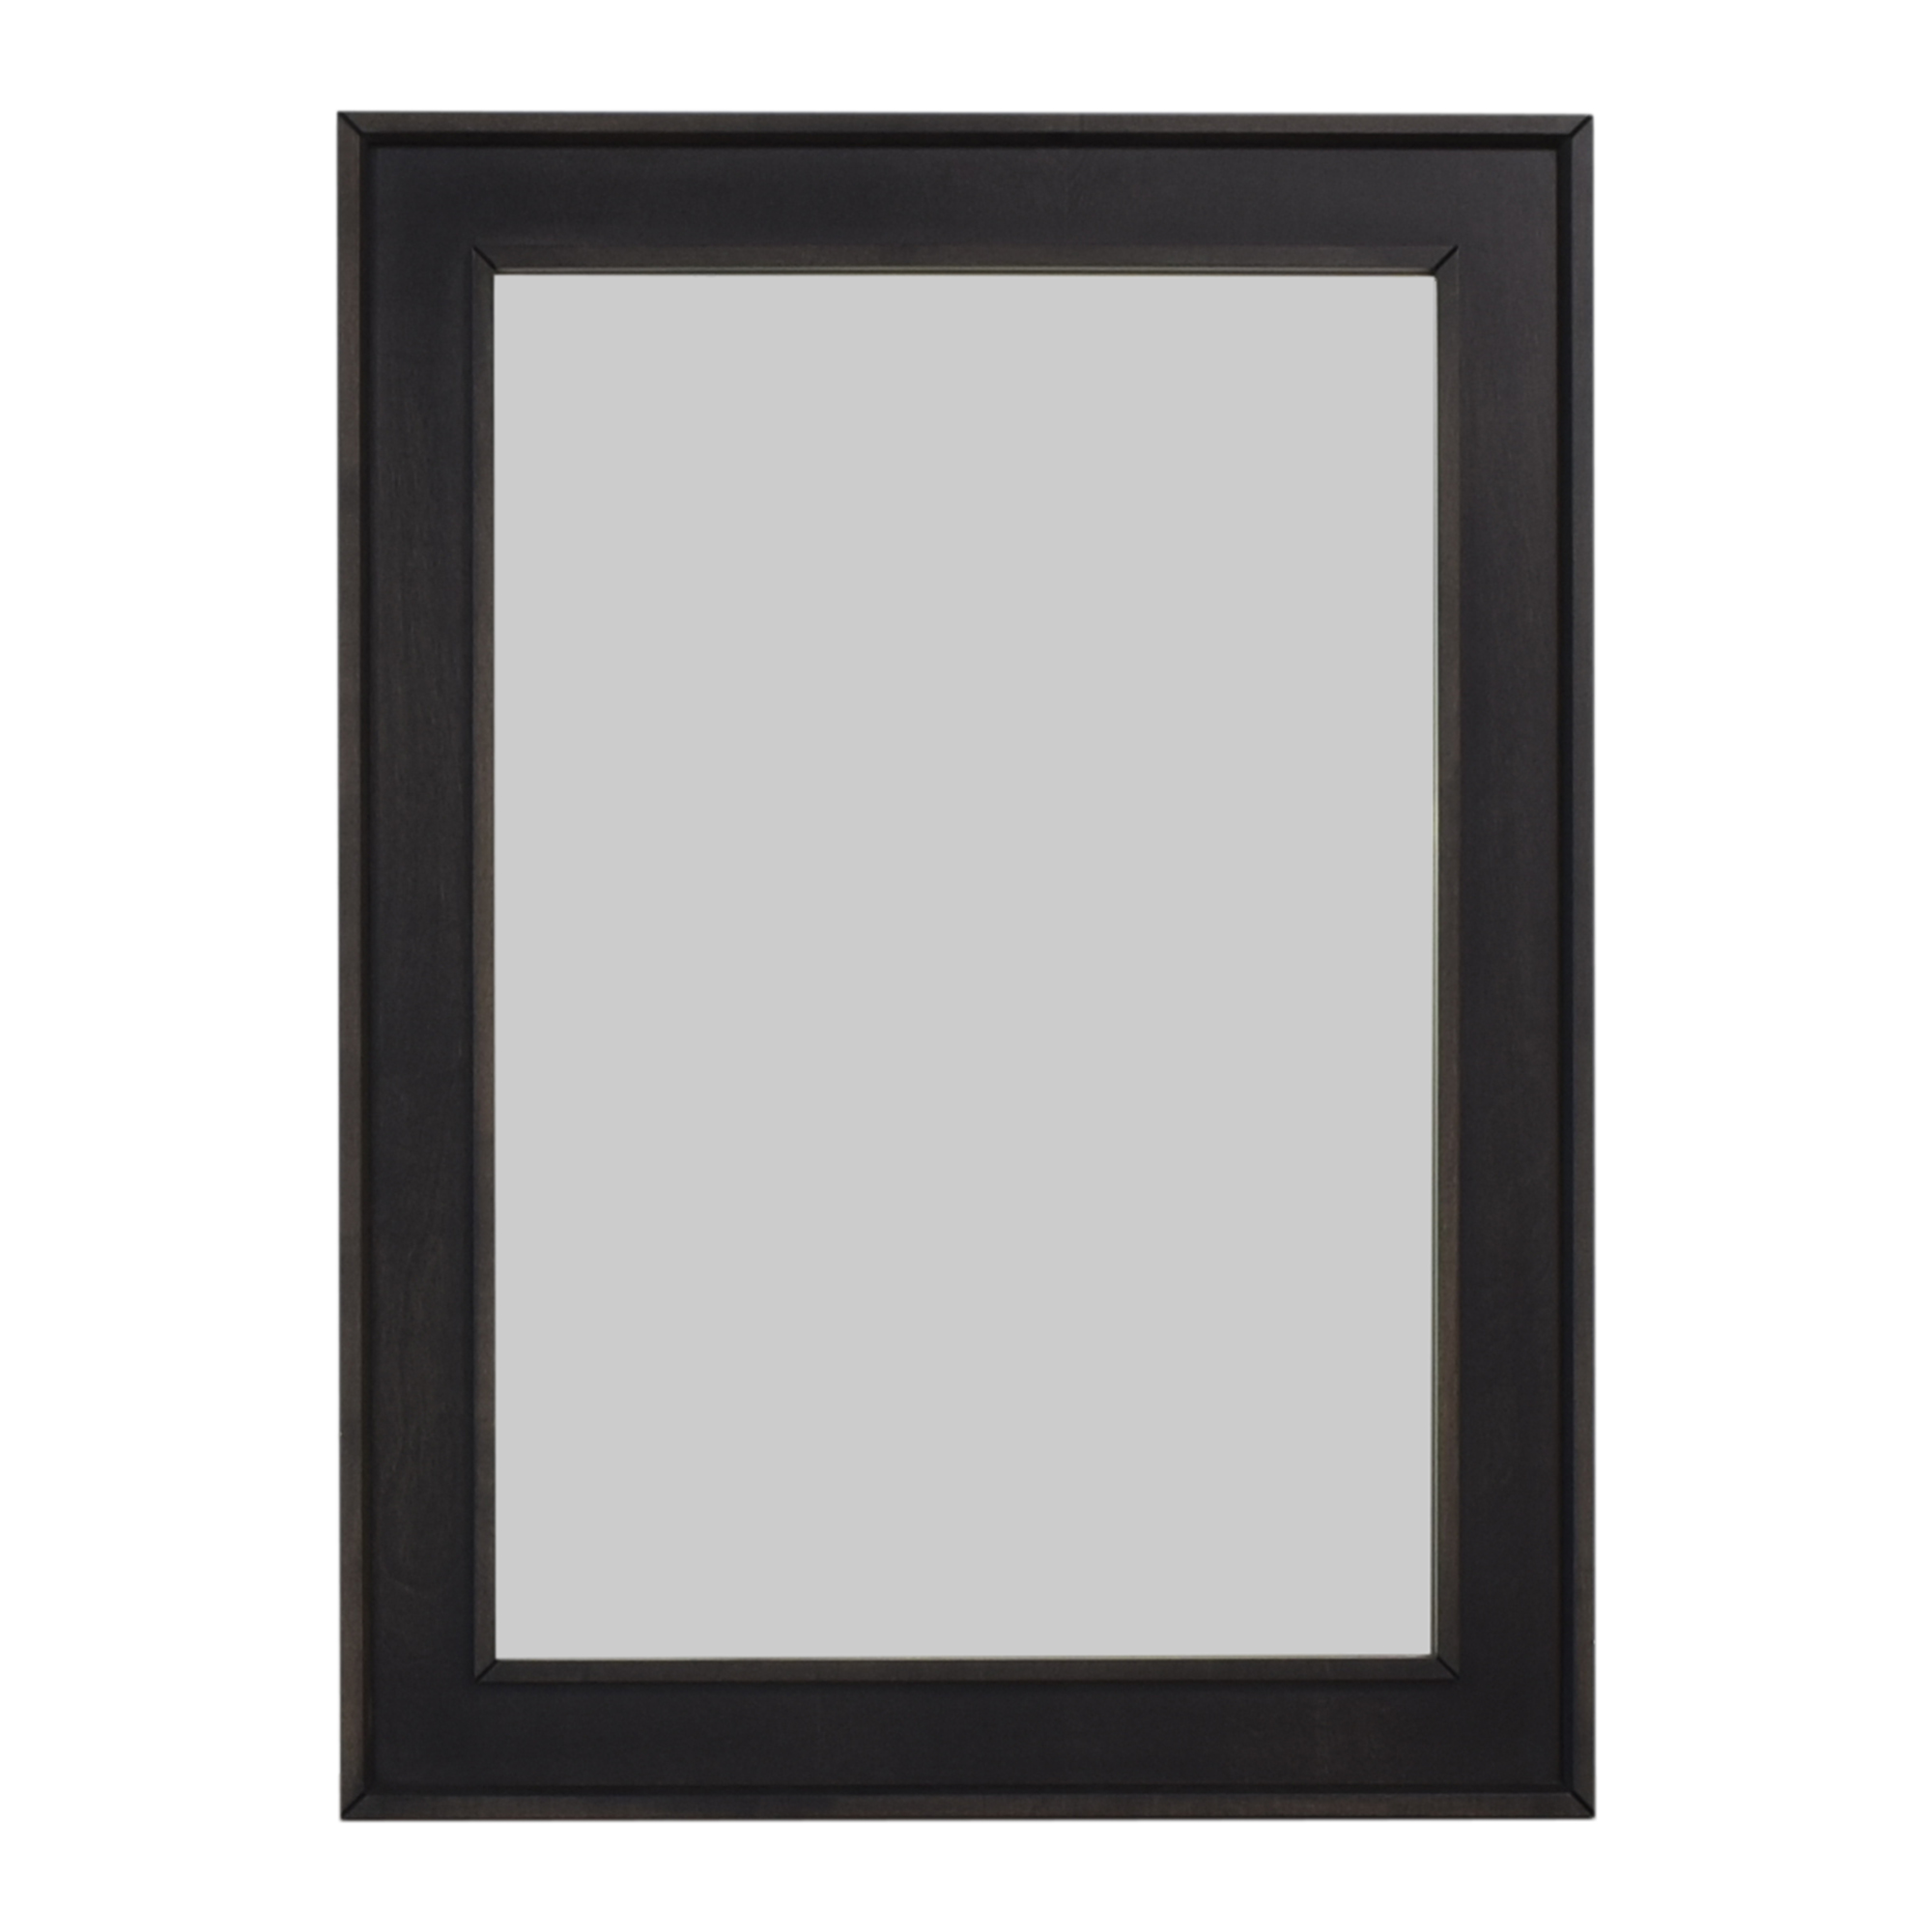 Crate & Barrel Crate & Barrel Framed Wall Mirror used